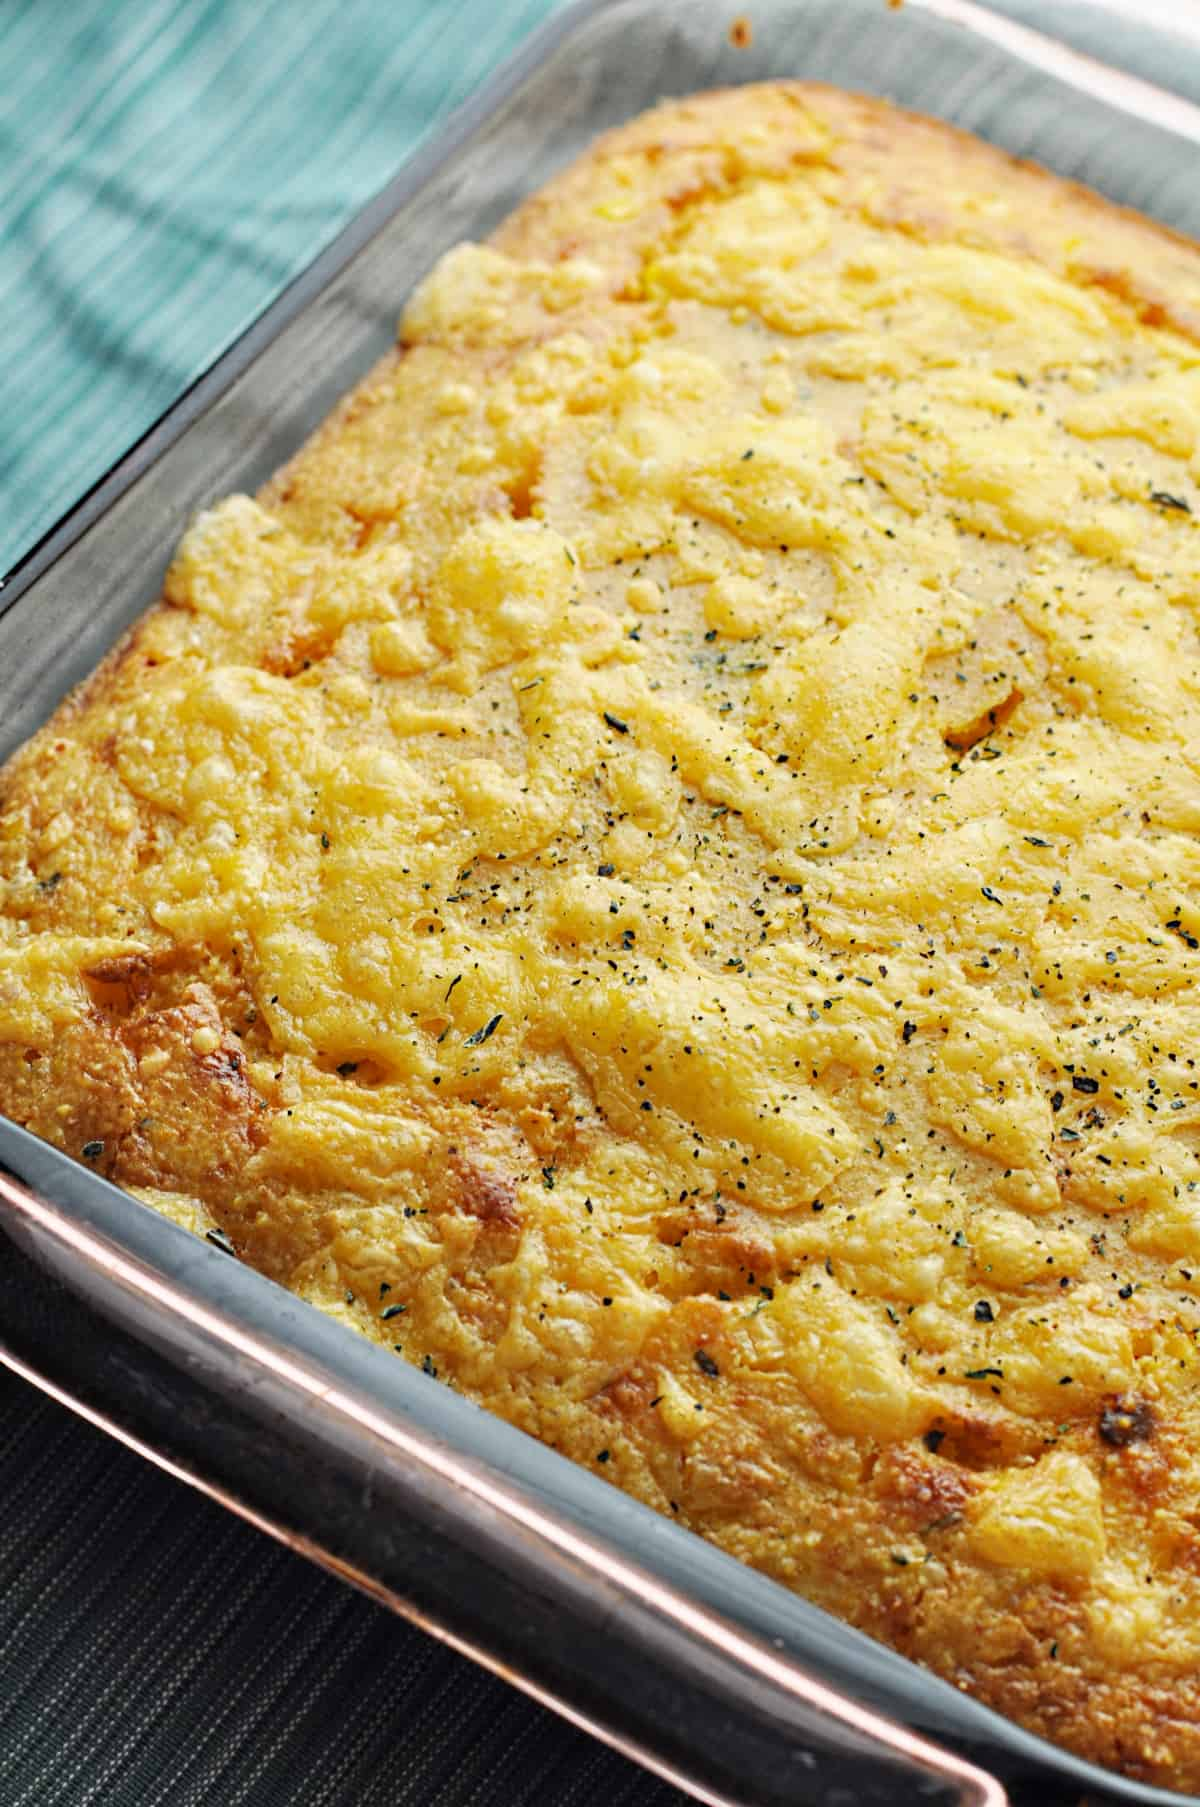 Corn casserole fresh from the oven